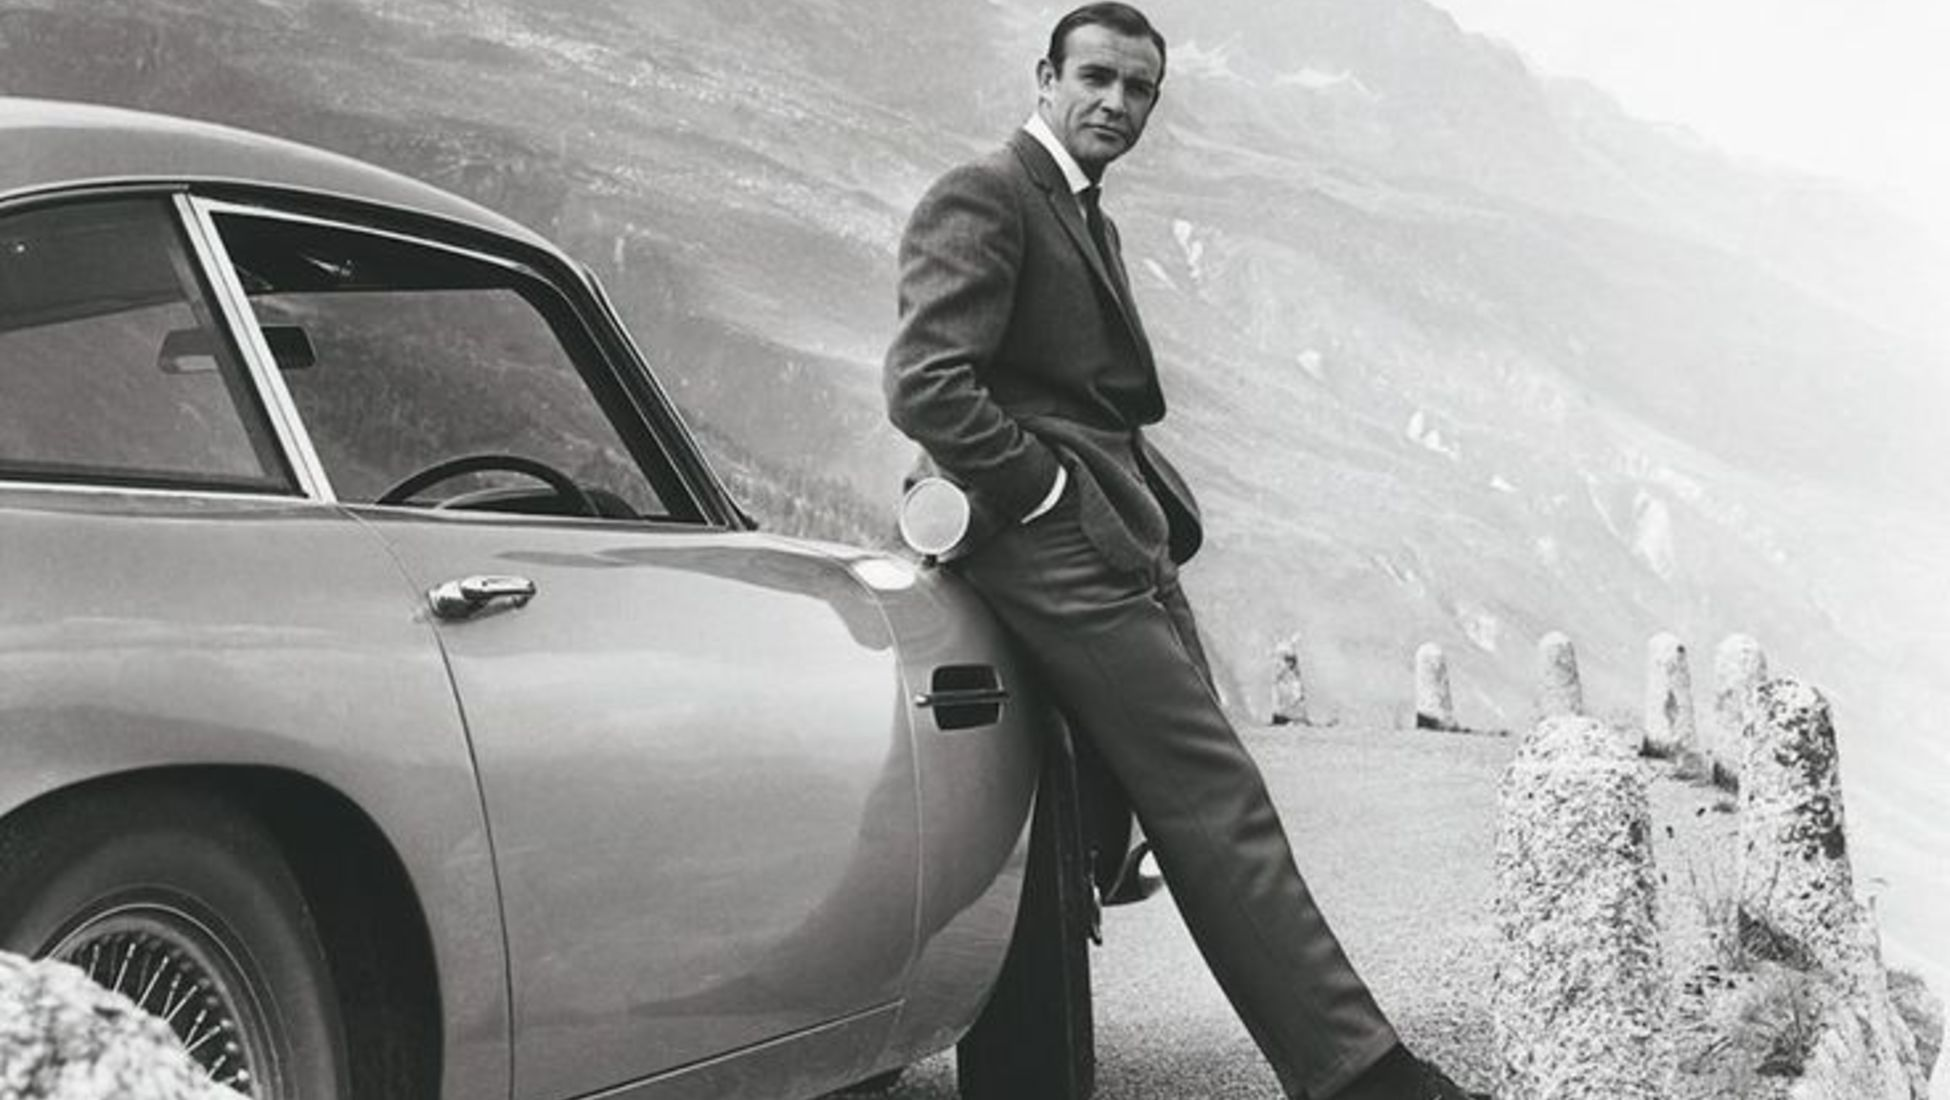 "Actor Sean Connery poses as James Bond next to his Aston Martin DB5 for movie 'Goldfinger"", 1964 - Photo by Donaldson Collection - Michael Ochs Archives via Barneby.fr"